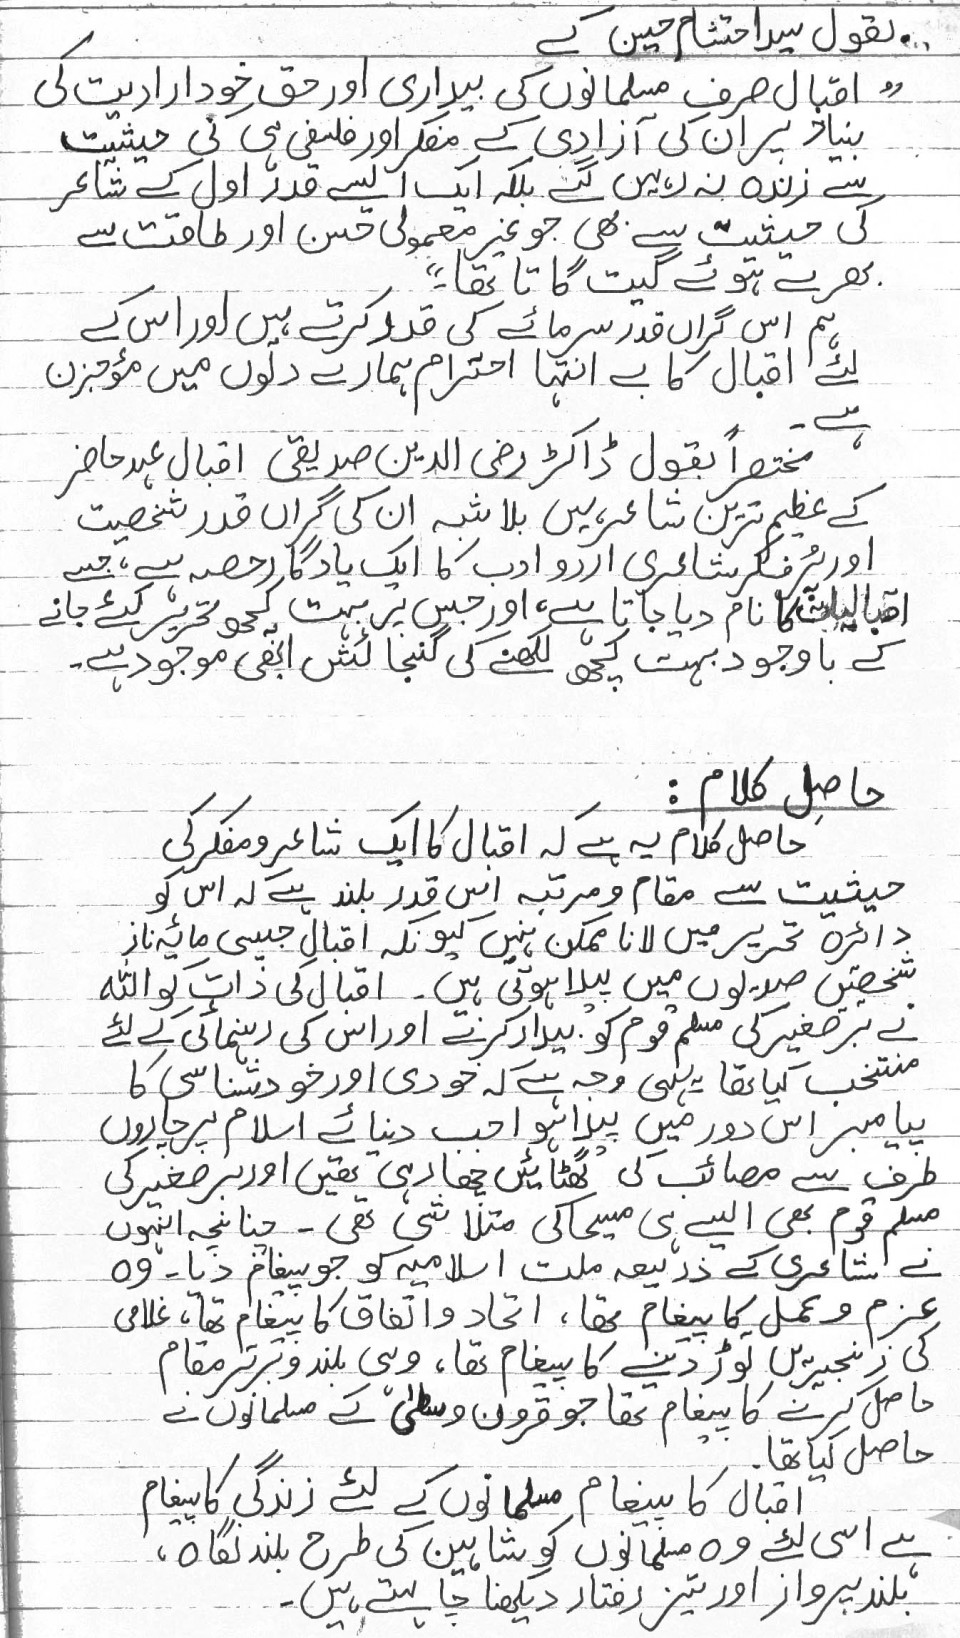 003 Jpg Urdu Essay Allama Iqbal Dreaded On In For Class 10 With Poetry Ka Shaheen Headings And 960